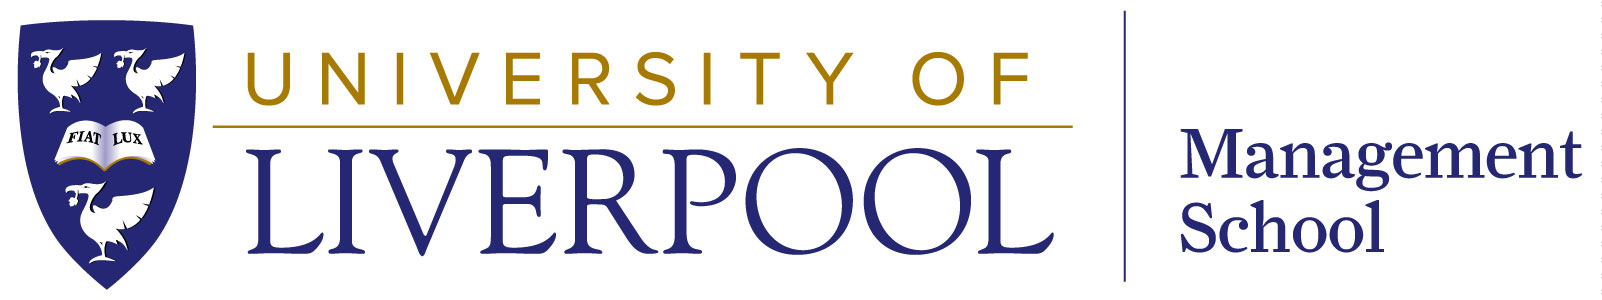 Logo of University of Liverpool School of Management